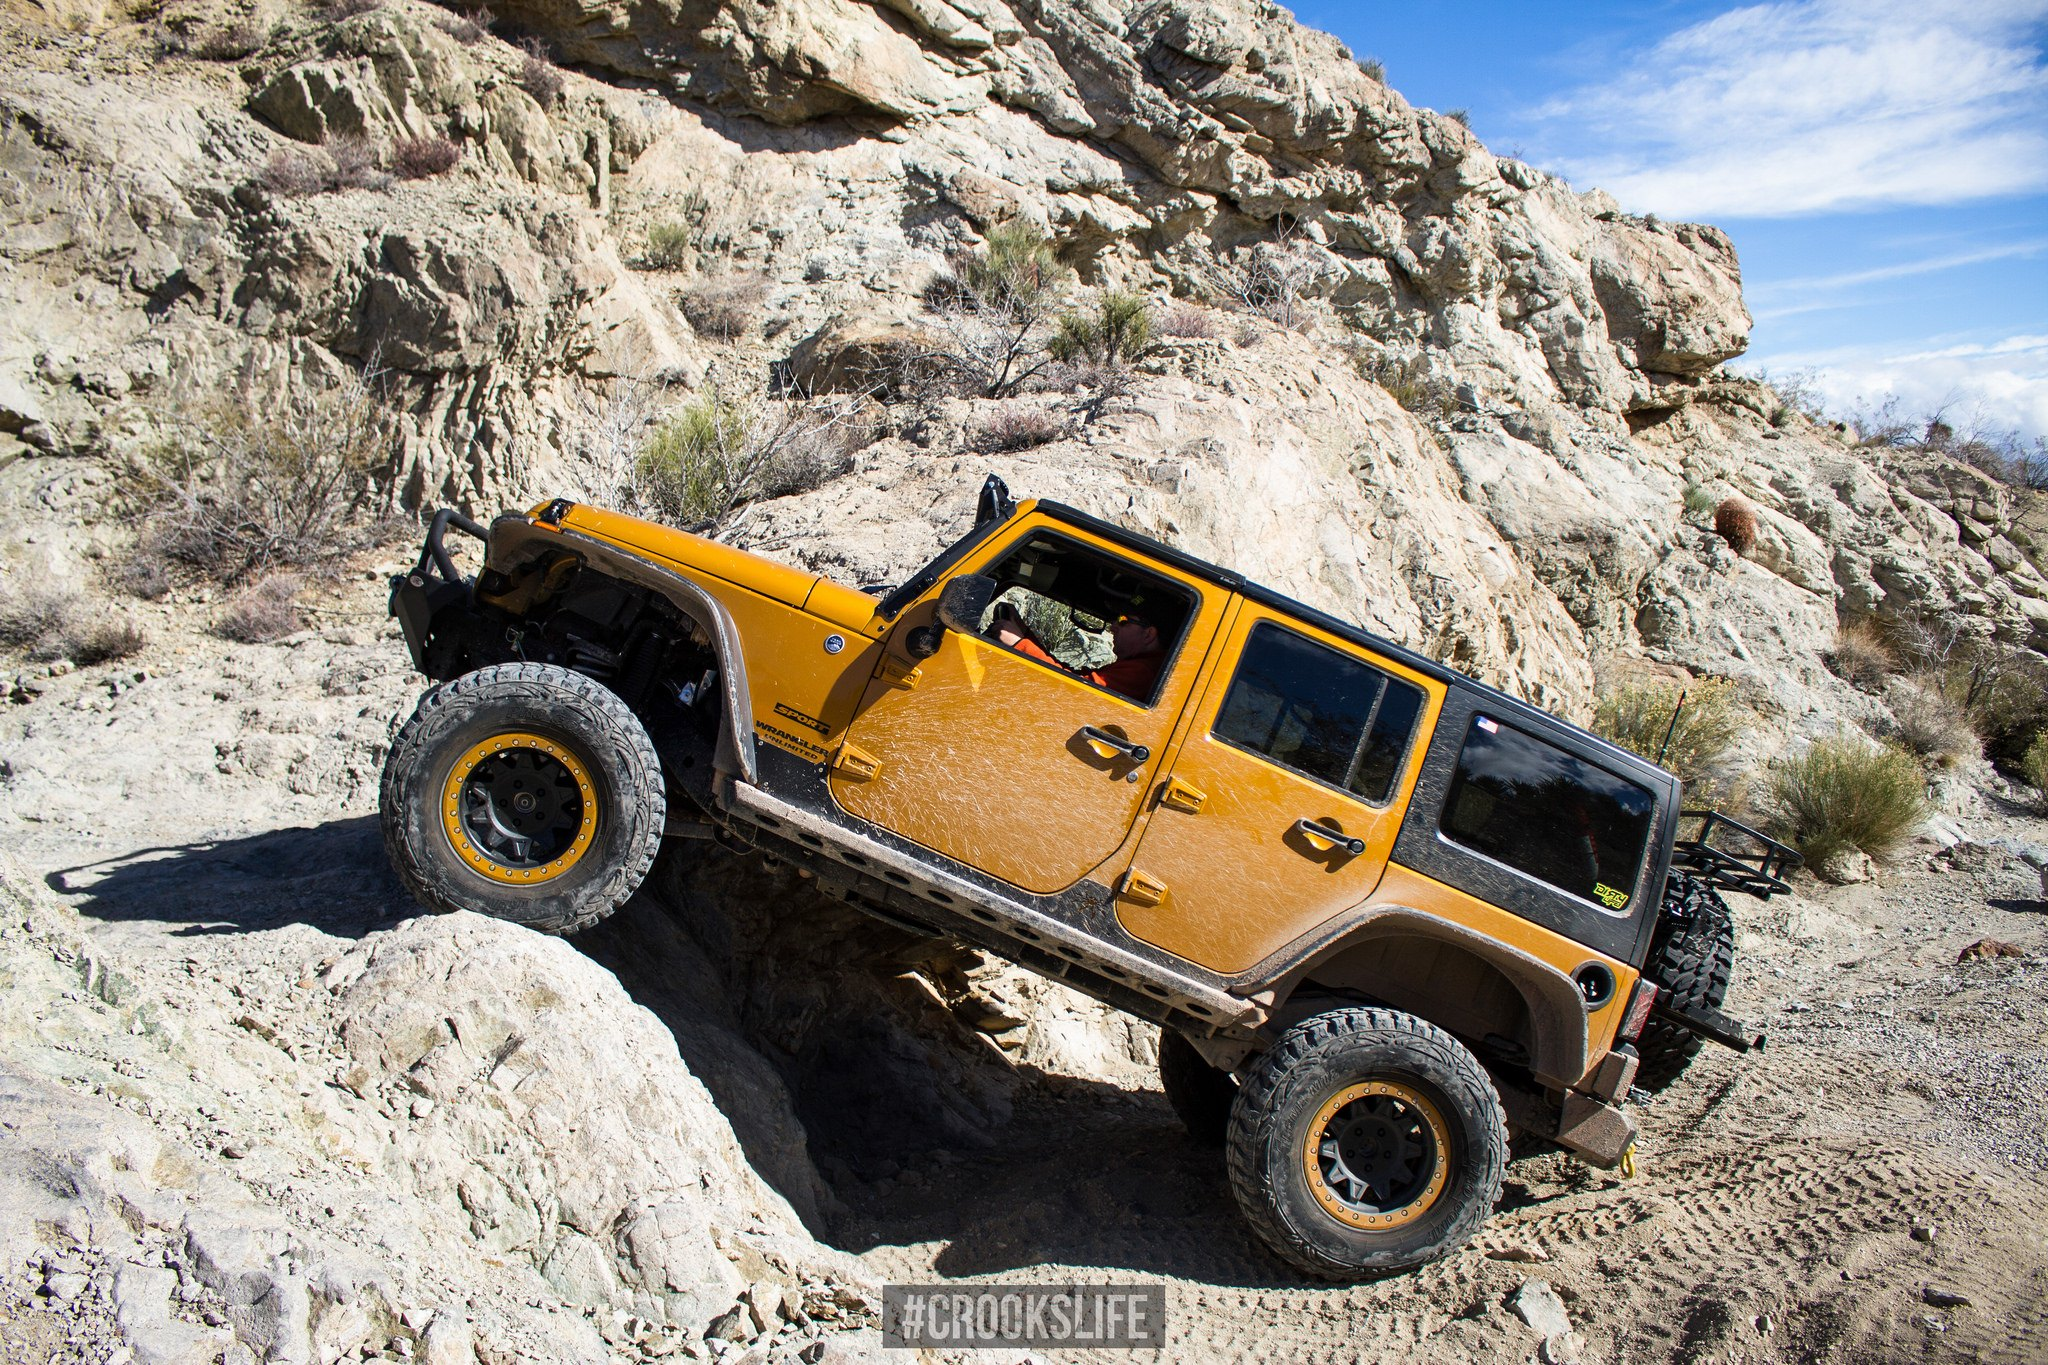 Yellow Jeep Wrangler with Aftermarket Fender Flares - Photo by Jimmy Crook